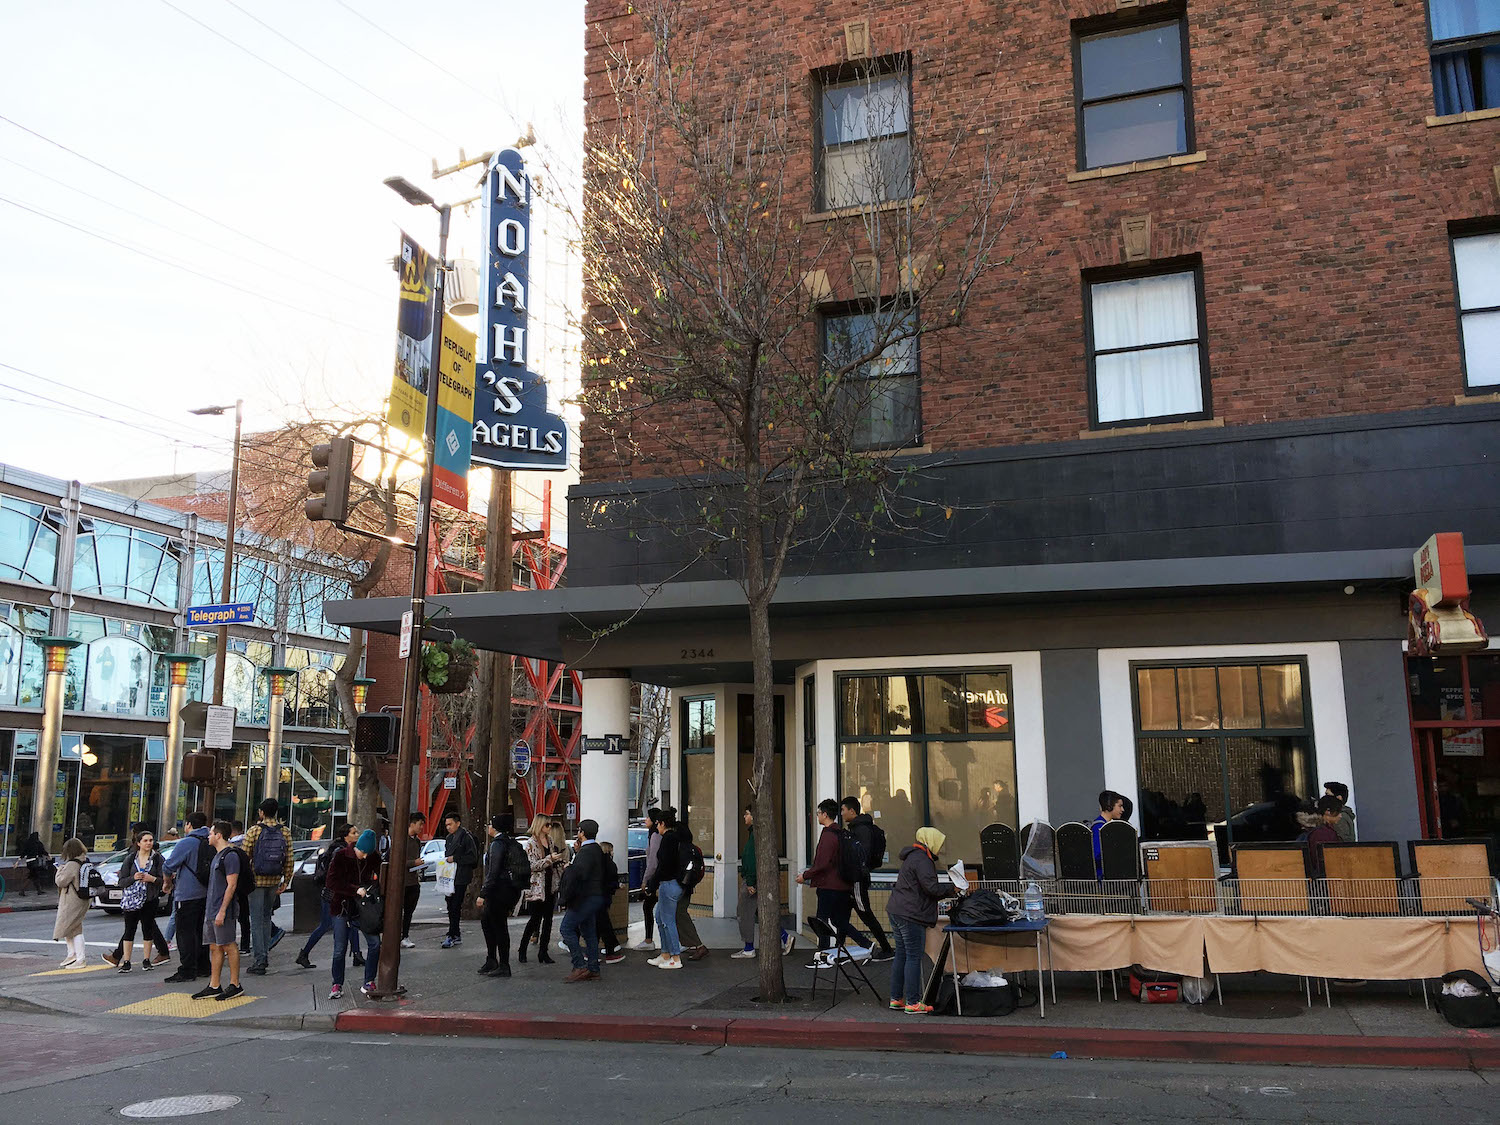 Bites Noah S Bagels Telegraph In Berkeley Closes Plans For